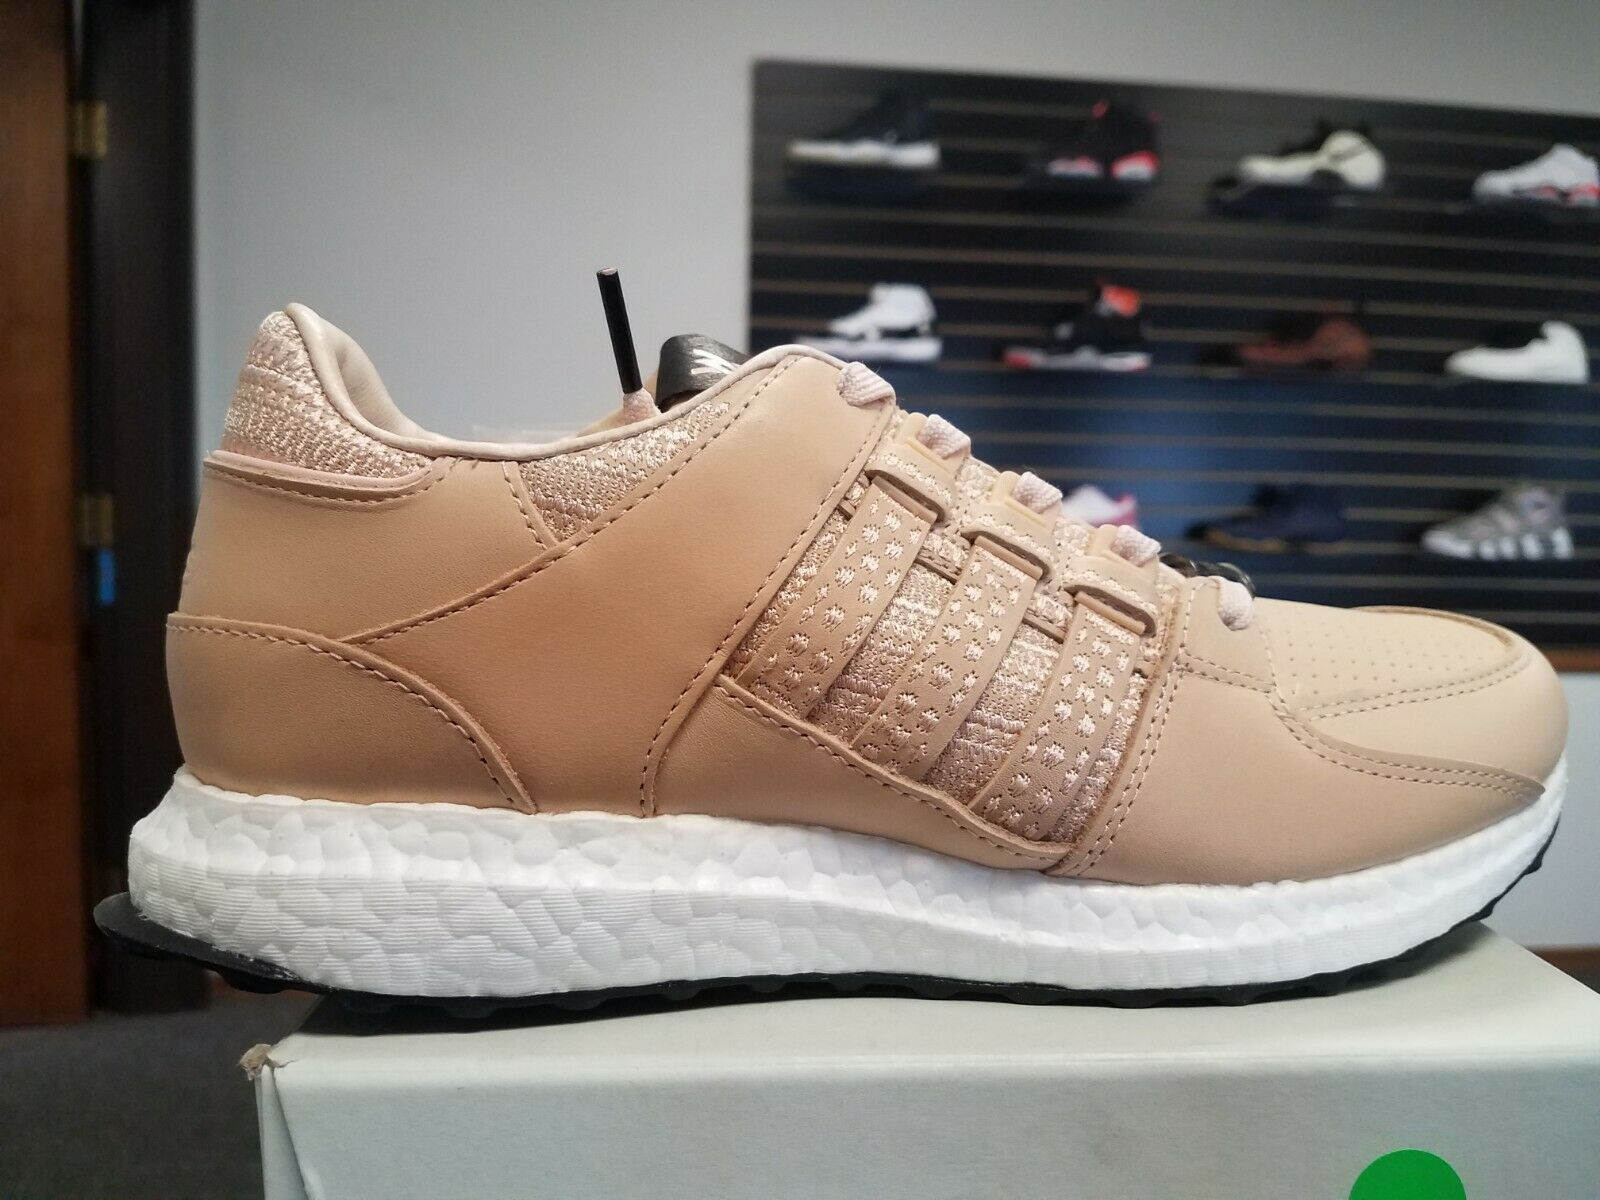 New Adidas Consortium x Avenue Equipment Support 93 16 Leather Tan CP9640 Size 9